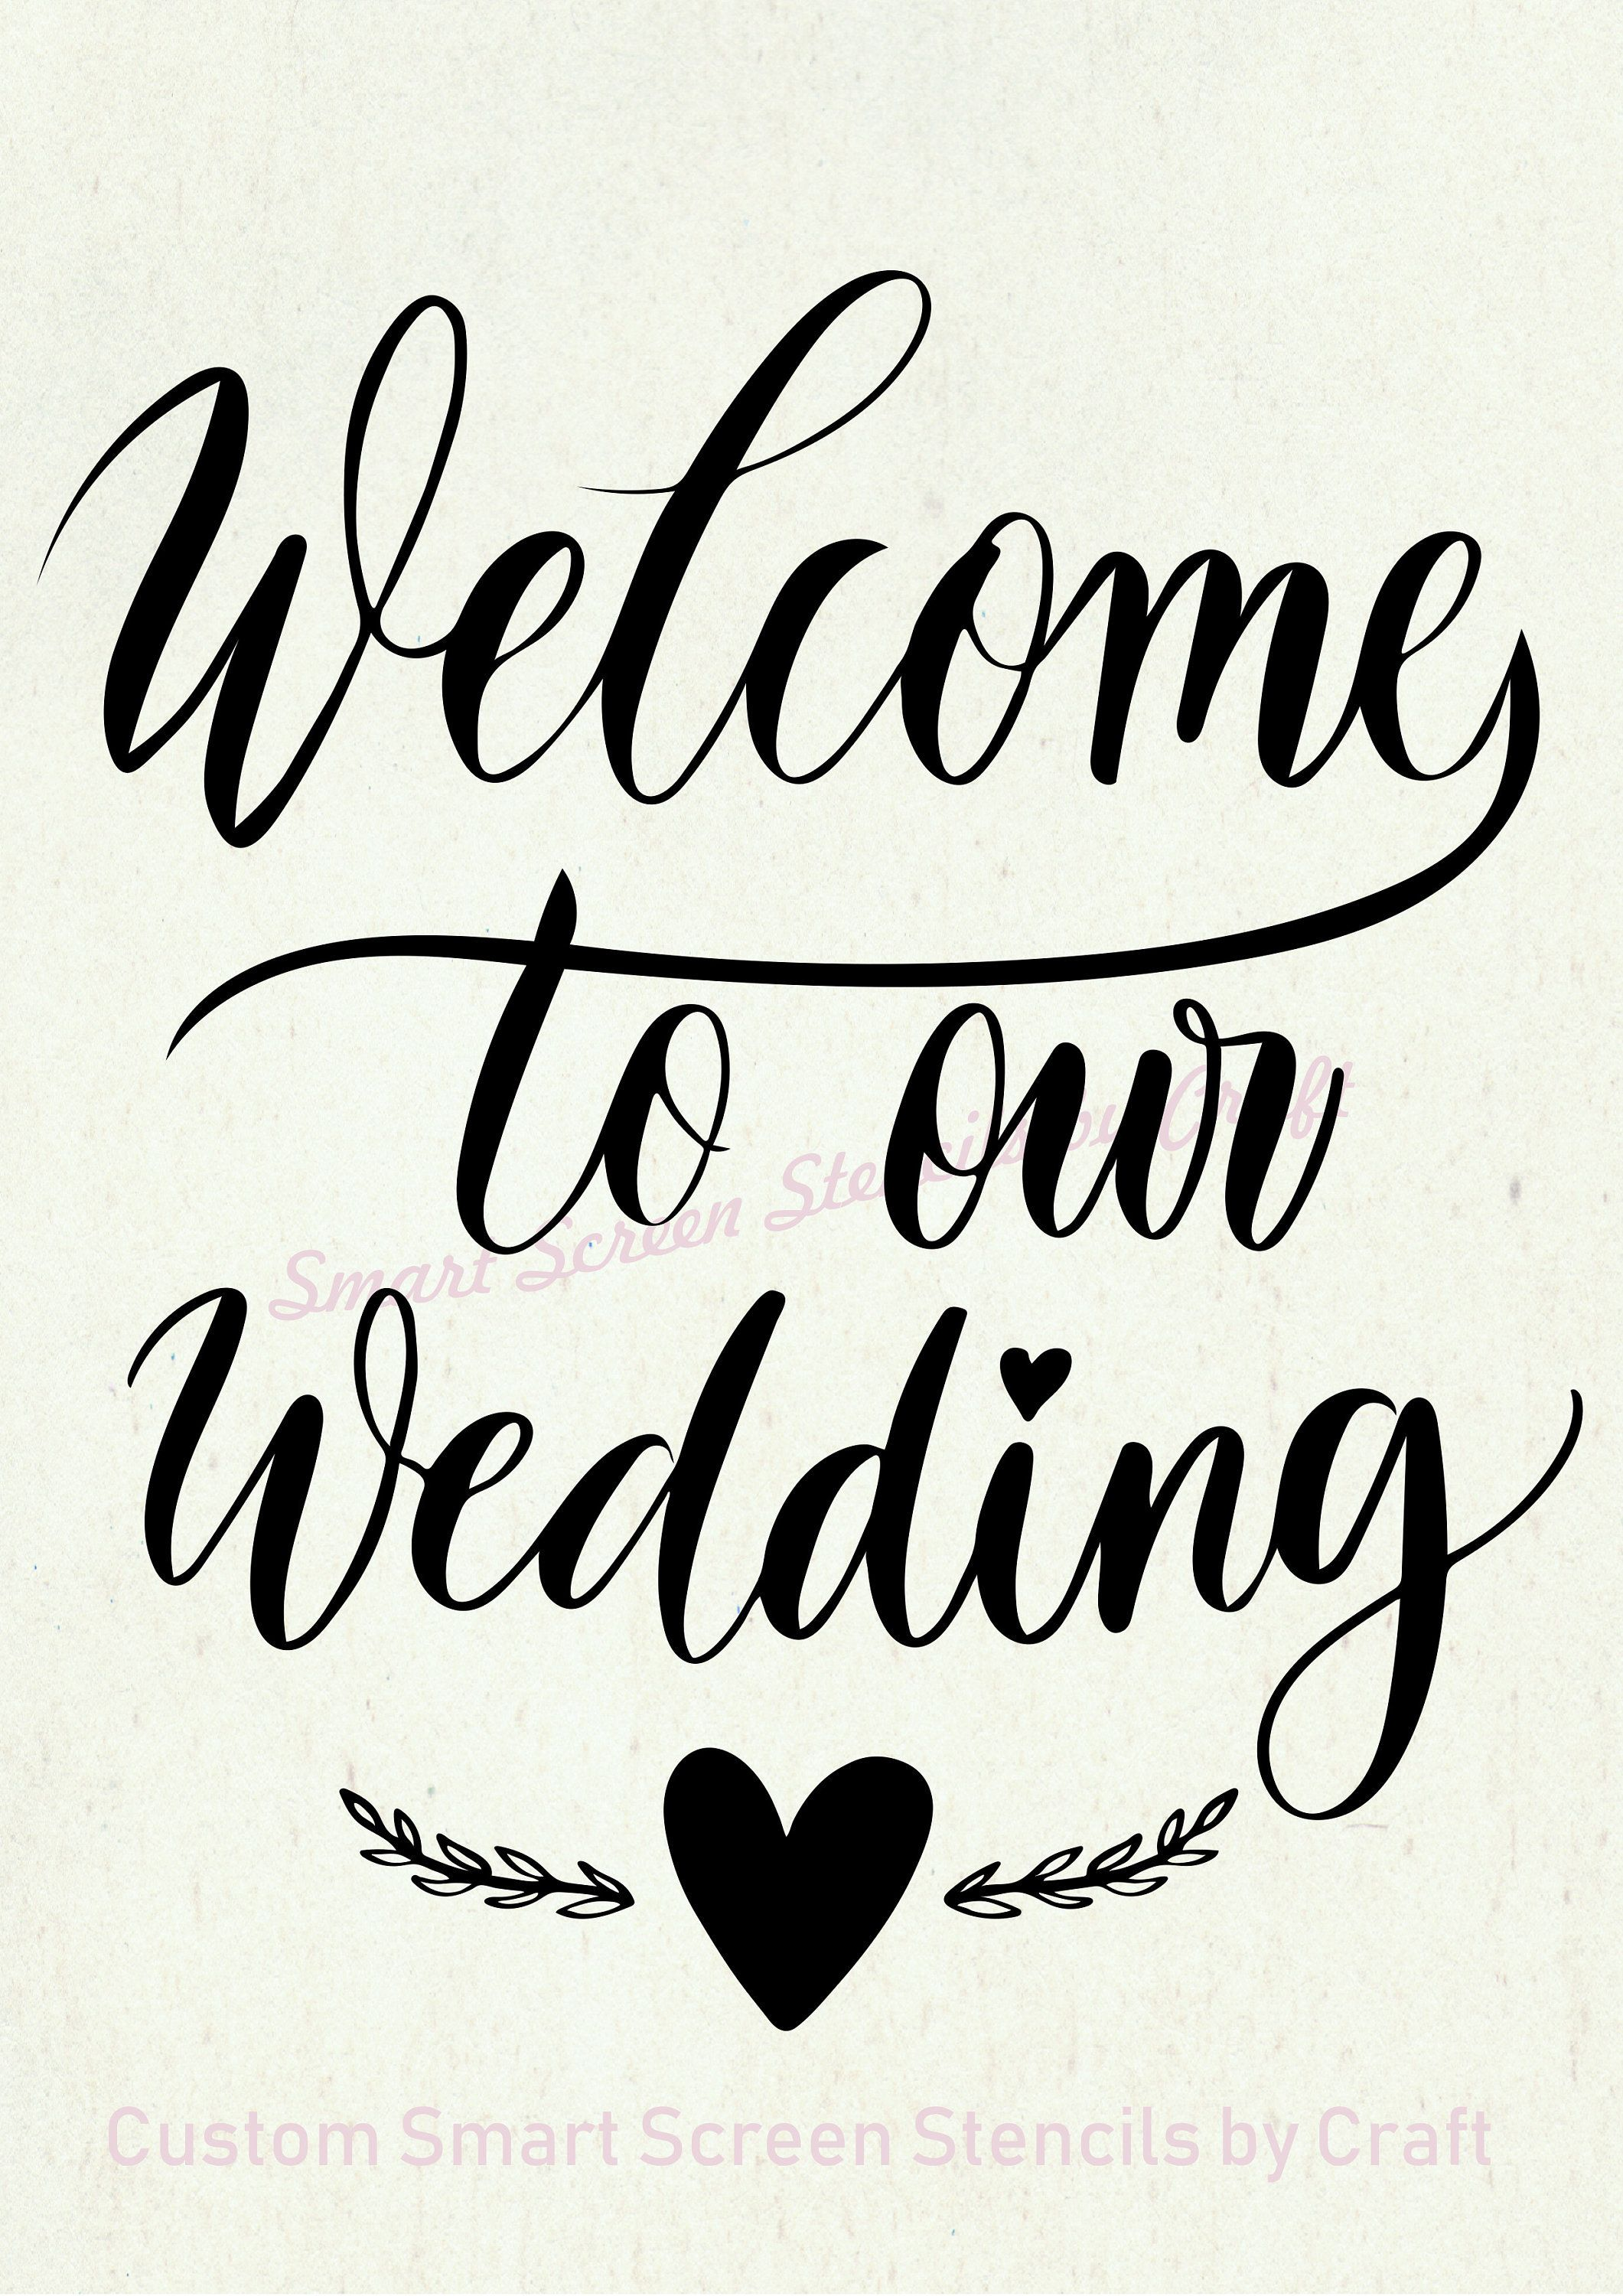 Welcome To Our Wedding Smartscreen Stencil Reusable Self Adhesive Canvas Cards Glass Ceramic Walls Fabric Wood Plastic Metal In 2020 Custom Stencils Large Stencils Stencils